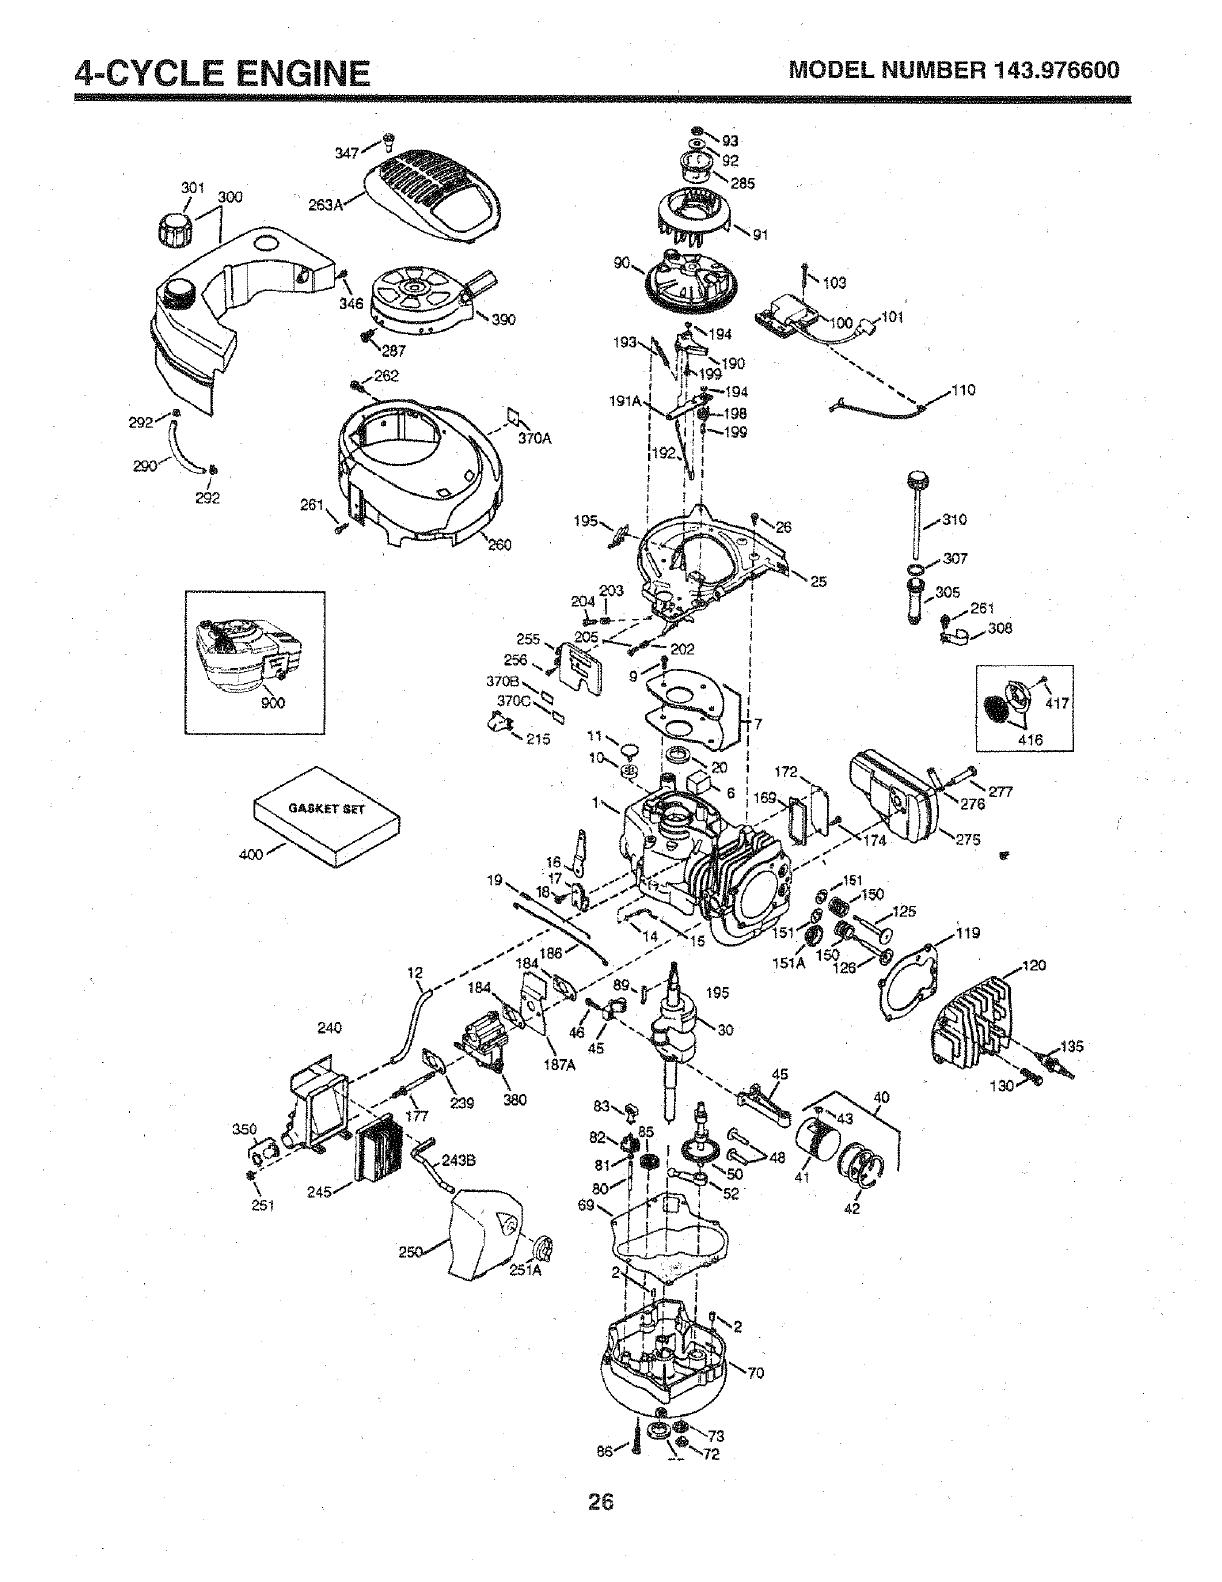 Page 26 of Craftsman Lawn Mower User Manual